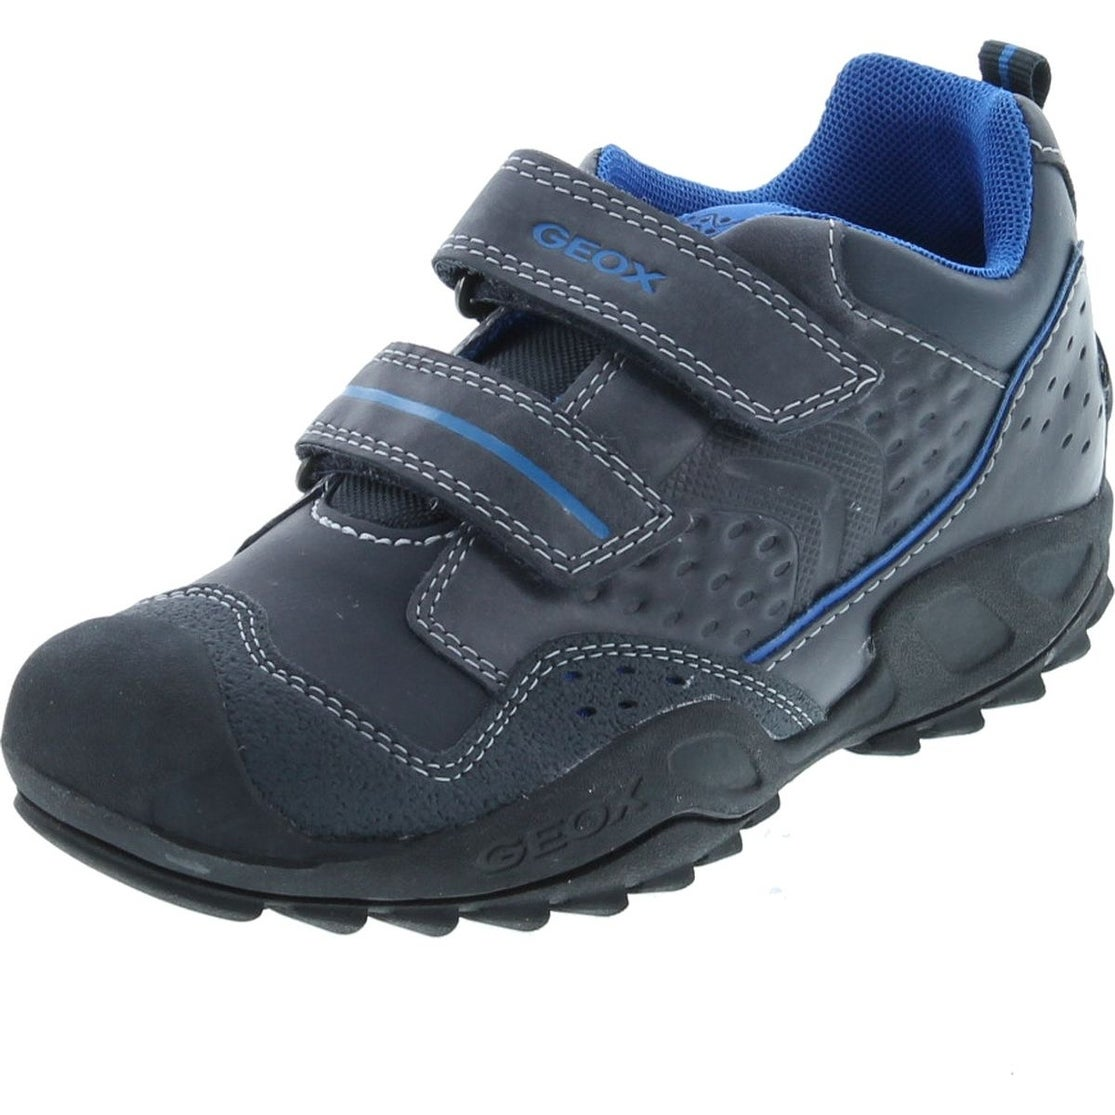 Geox Boys New Junior Savage Fashion Shoes NavyRoyal